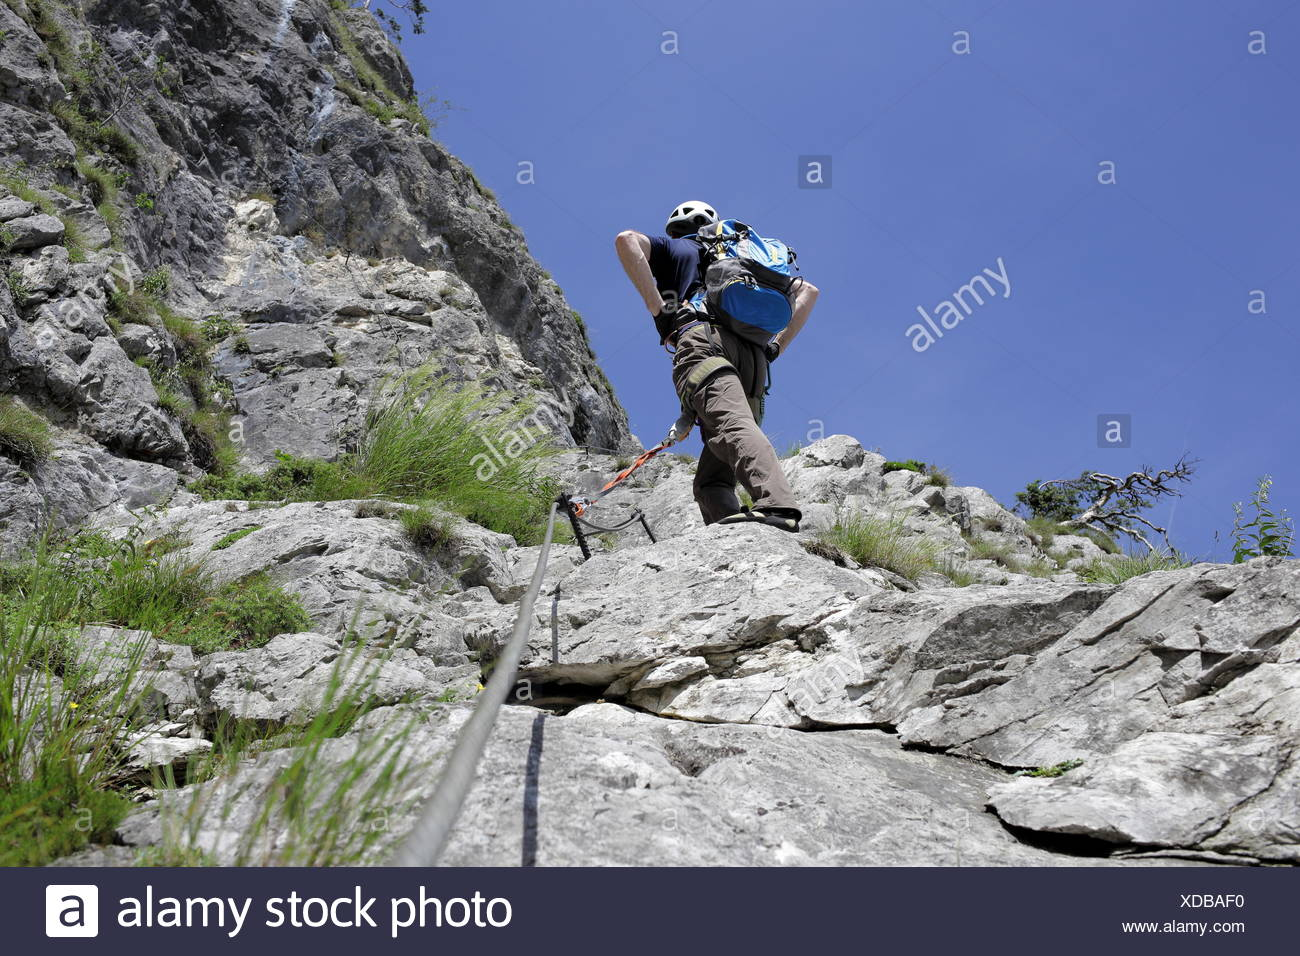 Sportler an der Kletterwand Stock Photo: 283606148 - Alamy